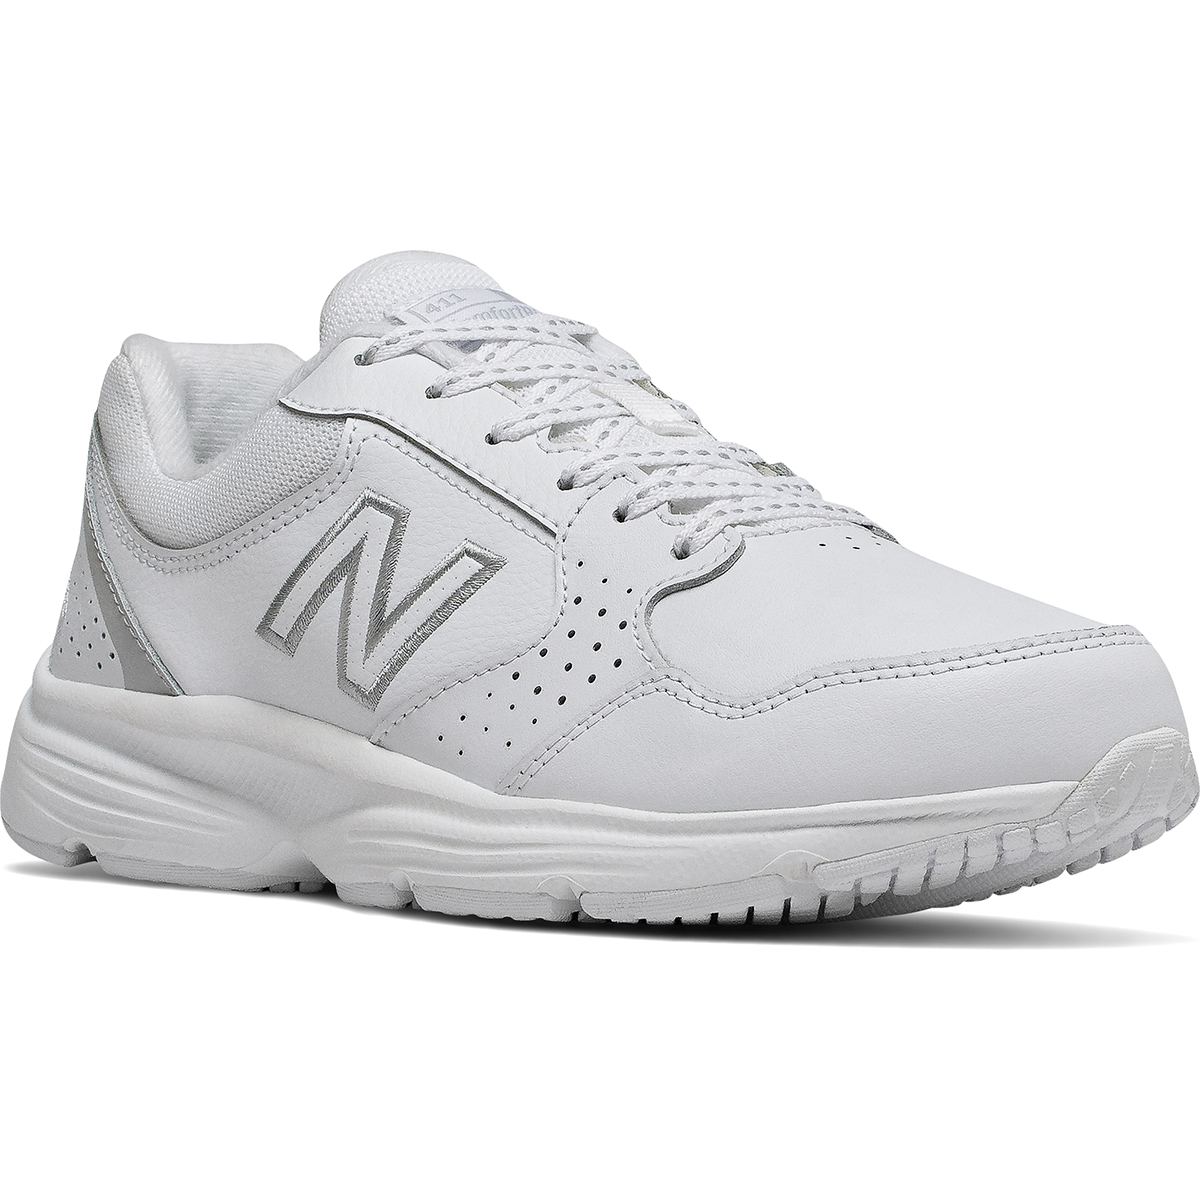 New Balance Women's 411 Walking Shoes, Wide - White, 10